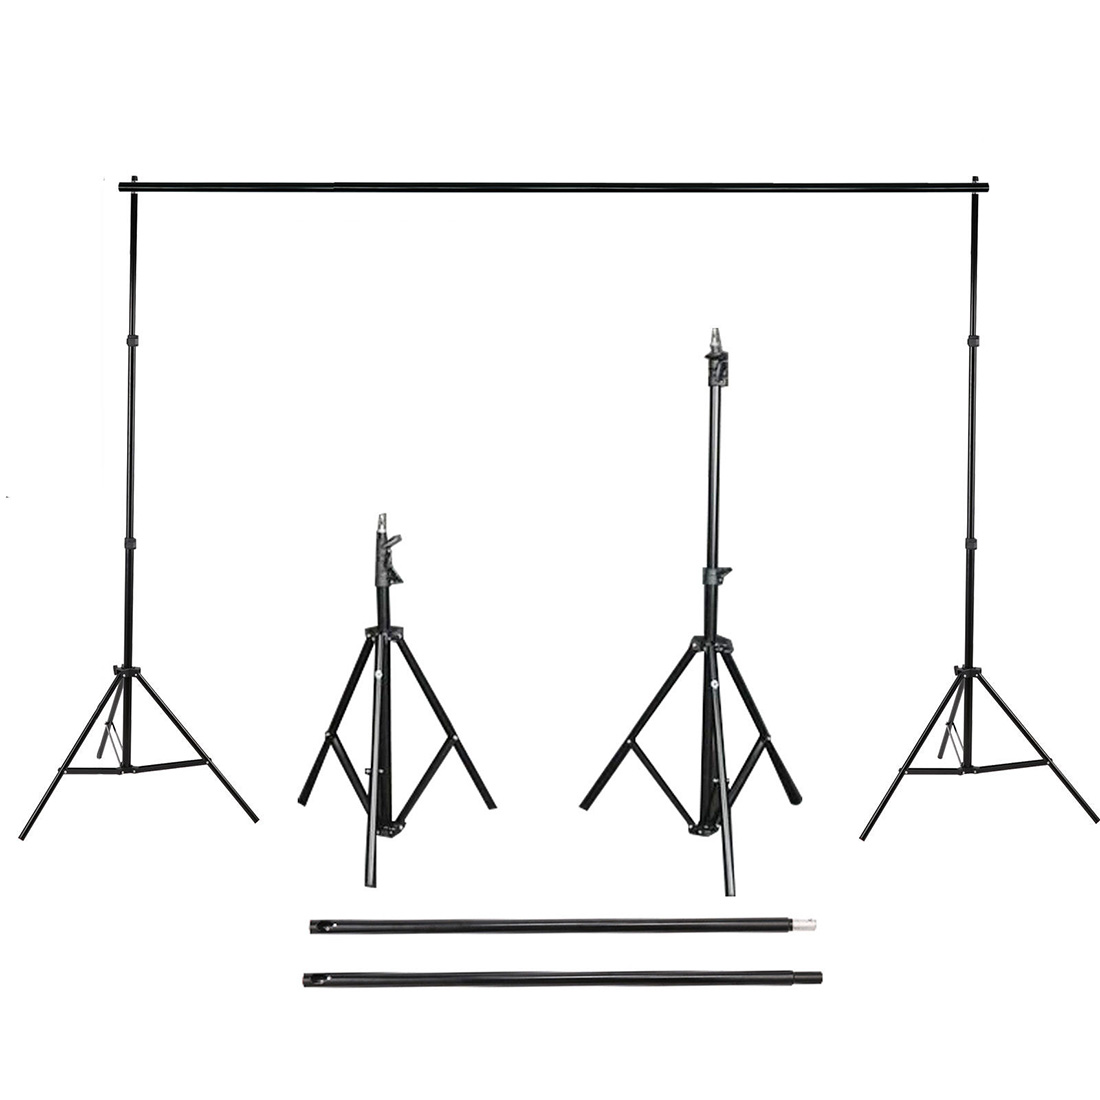 Top Deals 2.8m x 3m Photo Studio Background Backdrop Support Stand Kit + Free Carry Bag inno new arrive photo studio background support 3m x 2m backgroud stand kits with free backdrop high quality hot sale psbs2